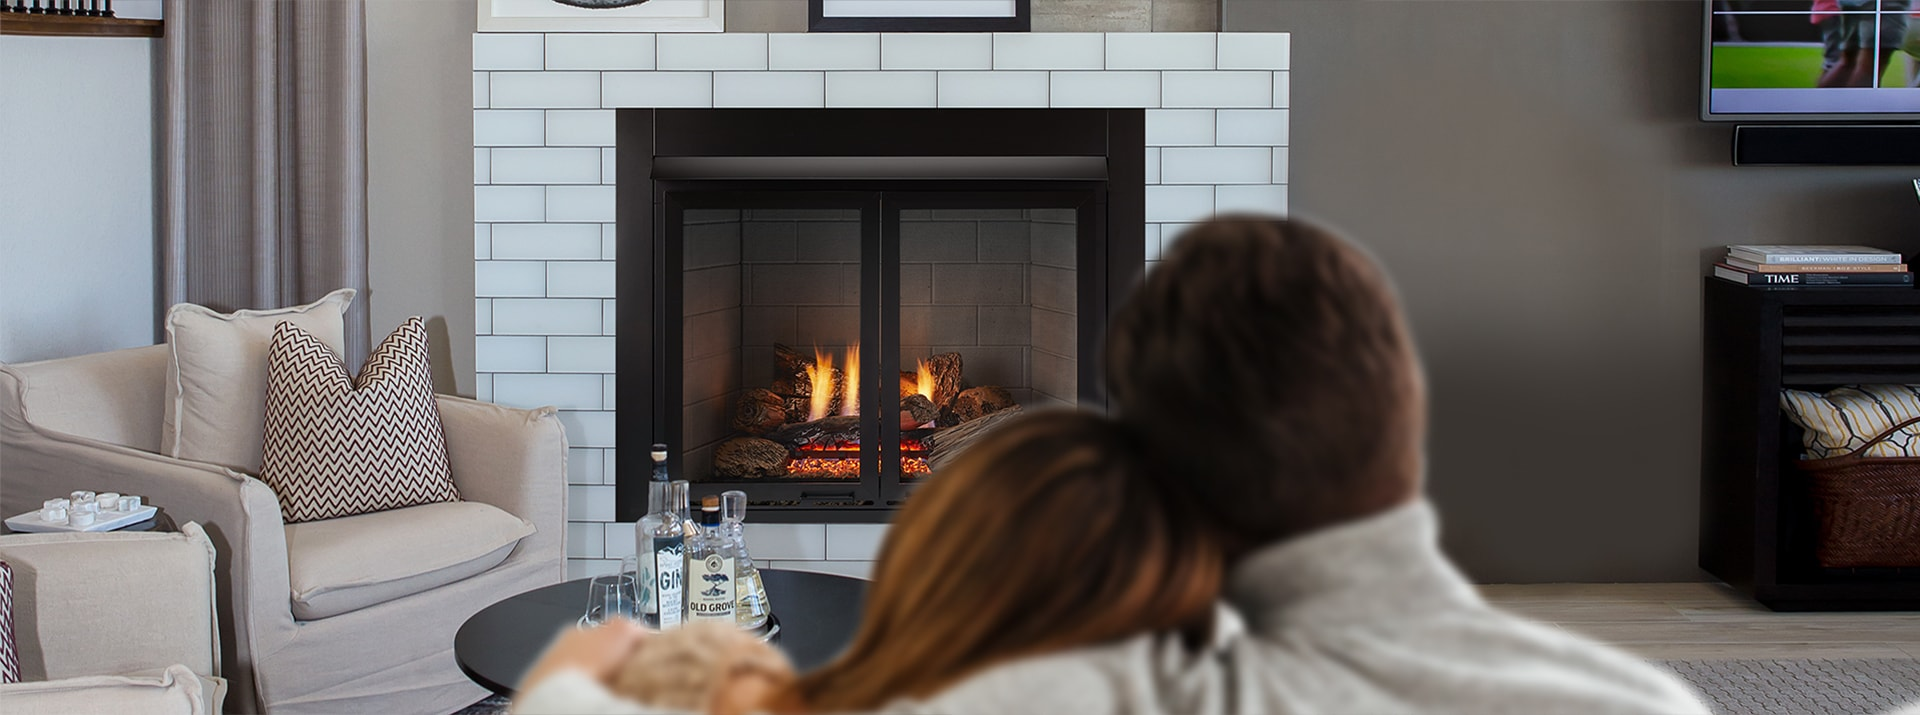 Propane Fireplace Repair Near Me Monessen Hearth Vent Free Fireplaces Fireboxes Stove Gas Logs